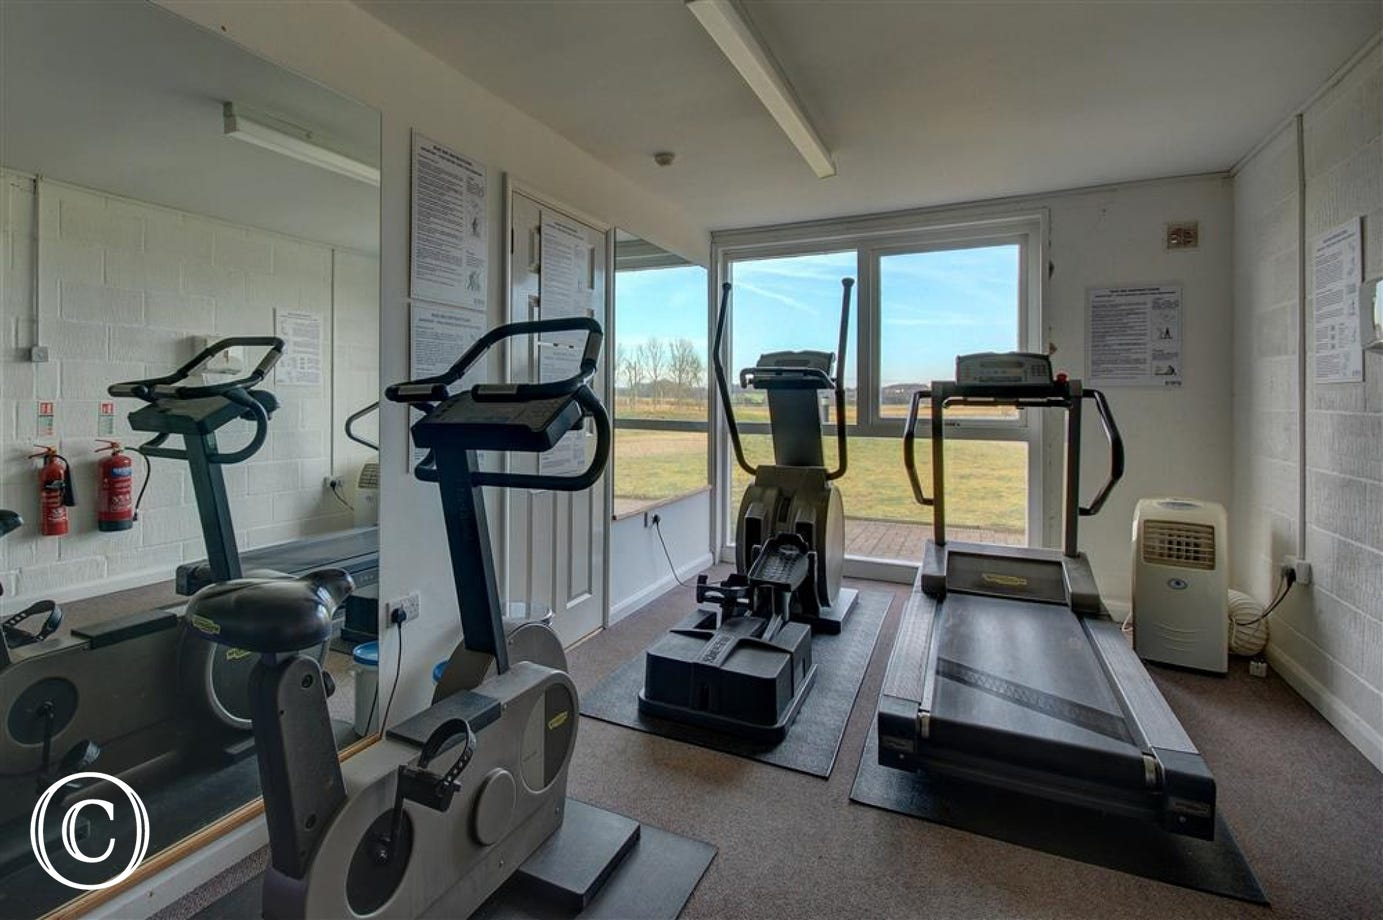 Gym Room - View 1